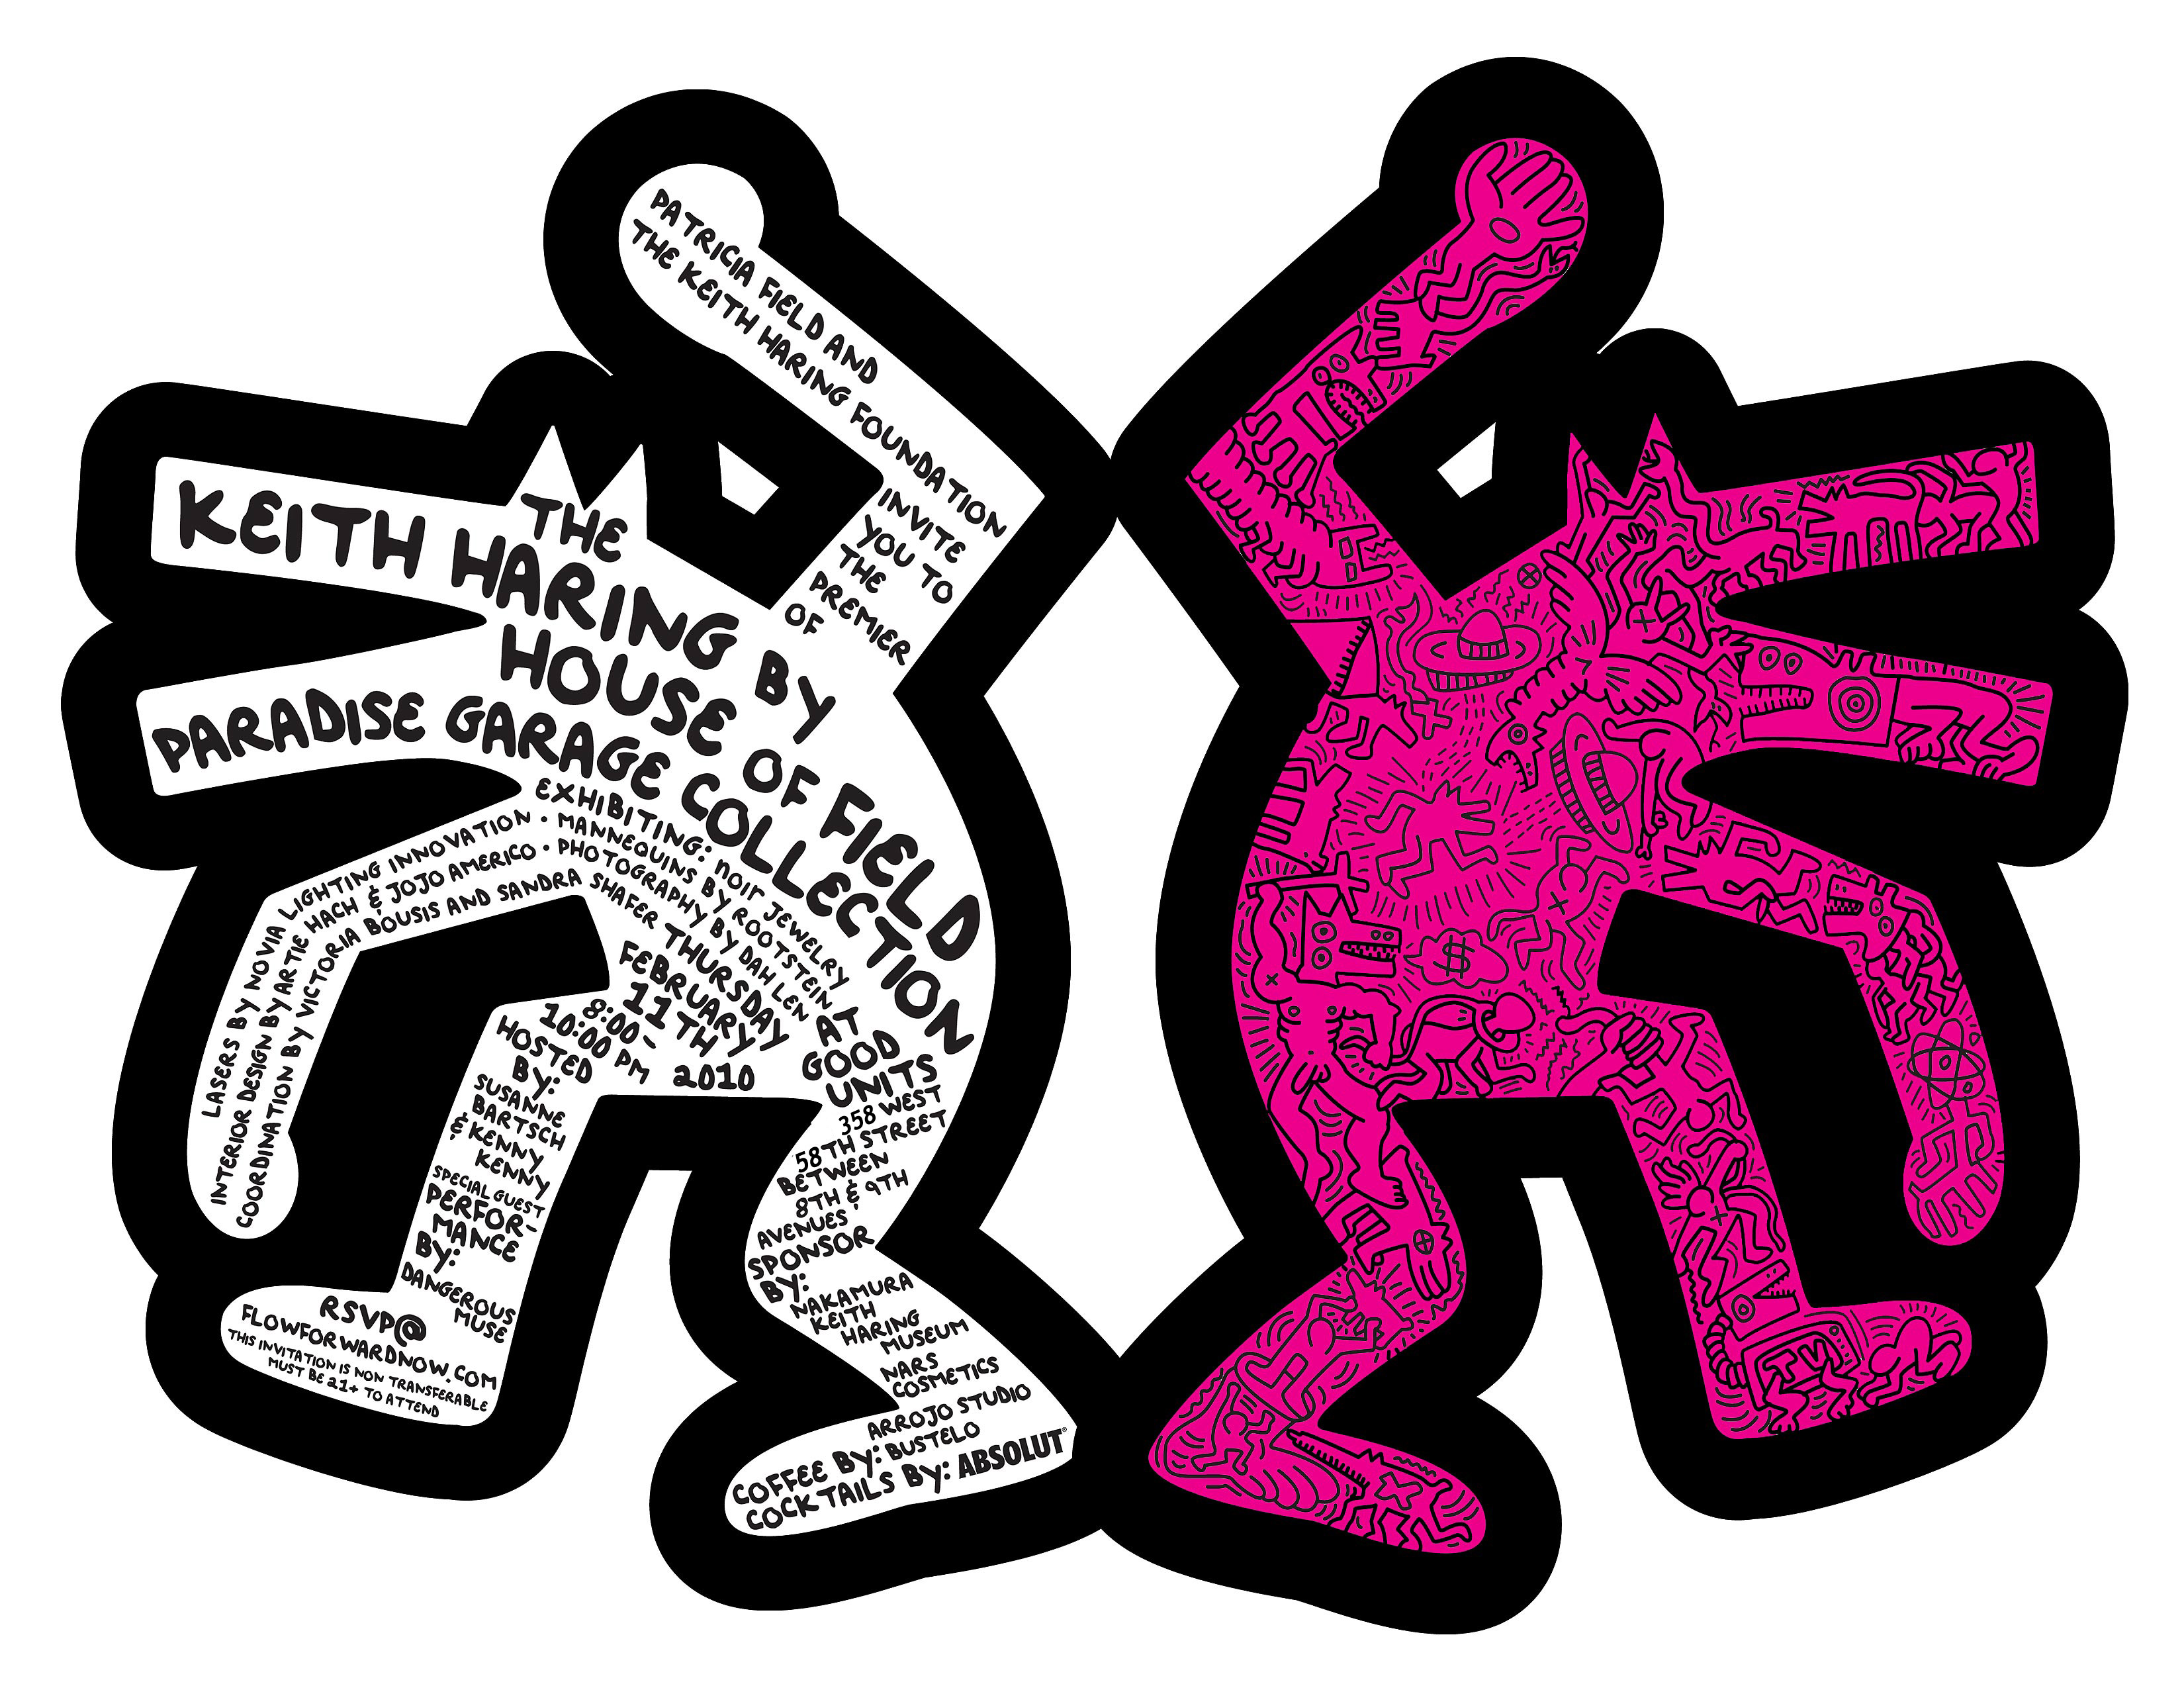 Keith Haring Invitation